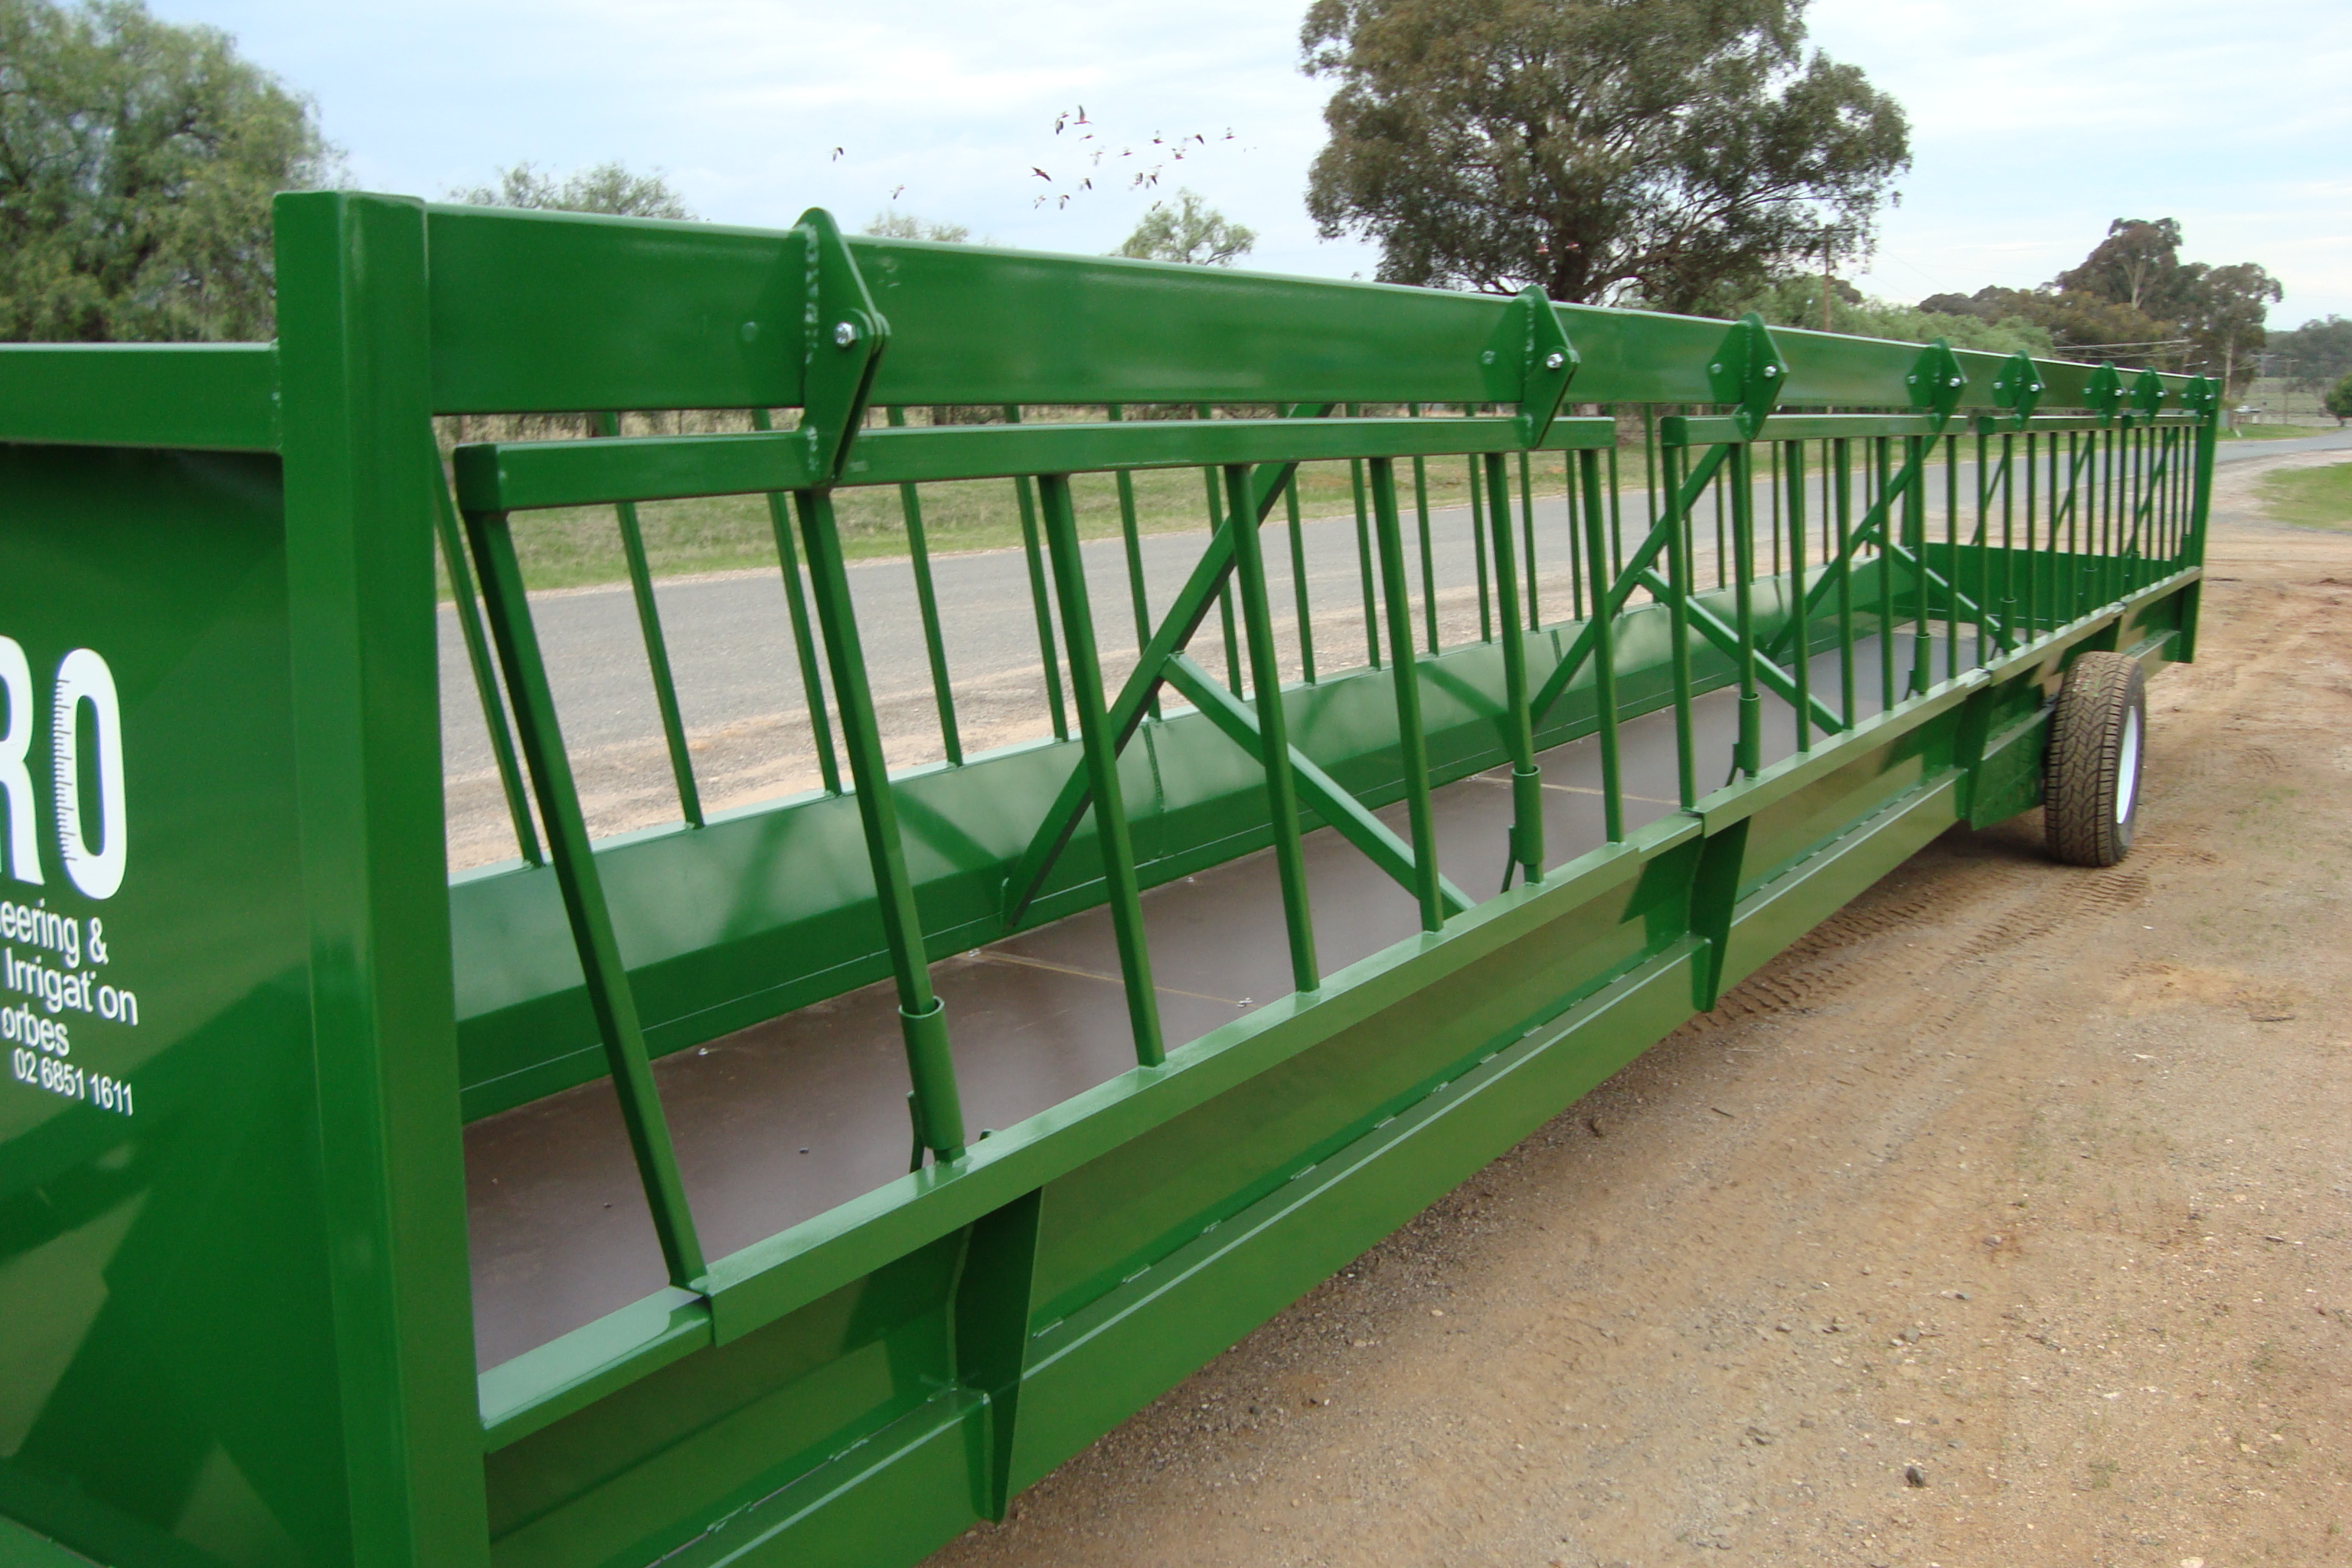 Mobile Cattle Feed Troughs   Midpro Engineering & Irrigation